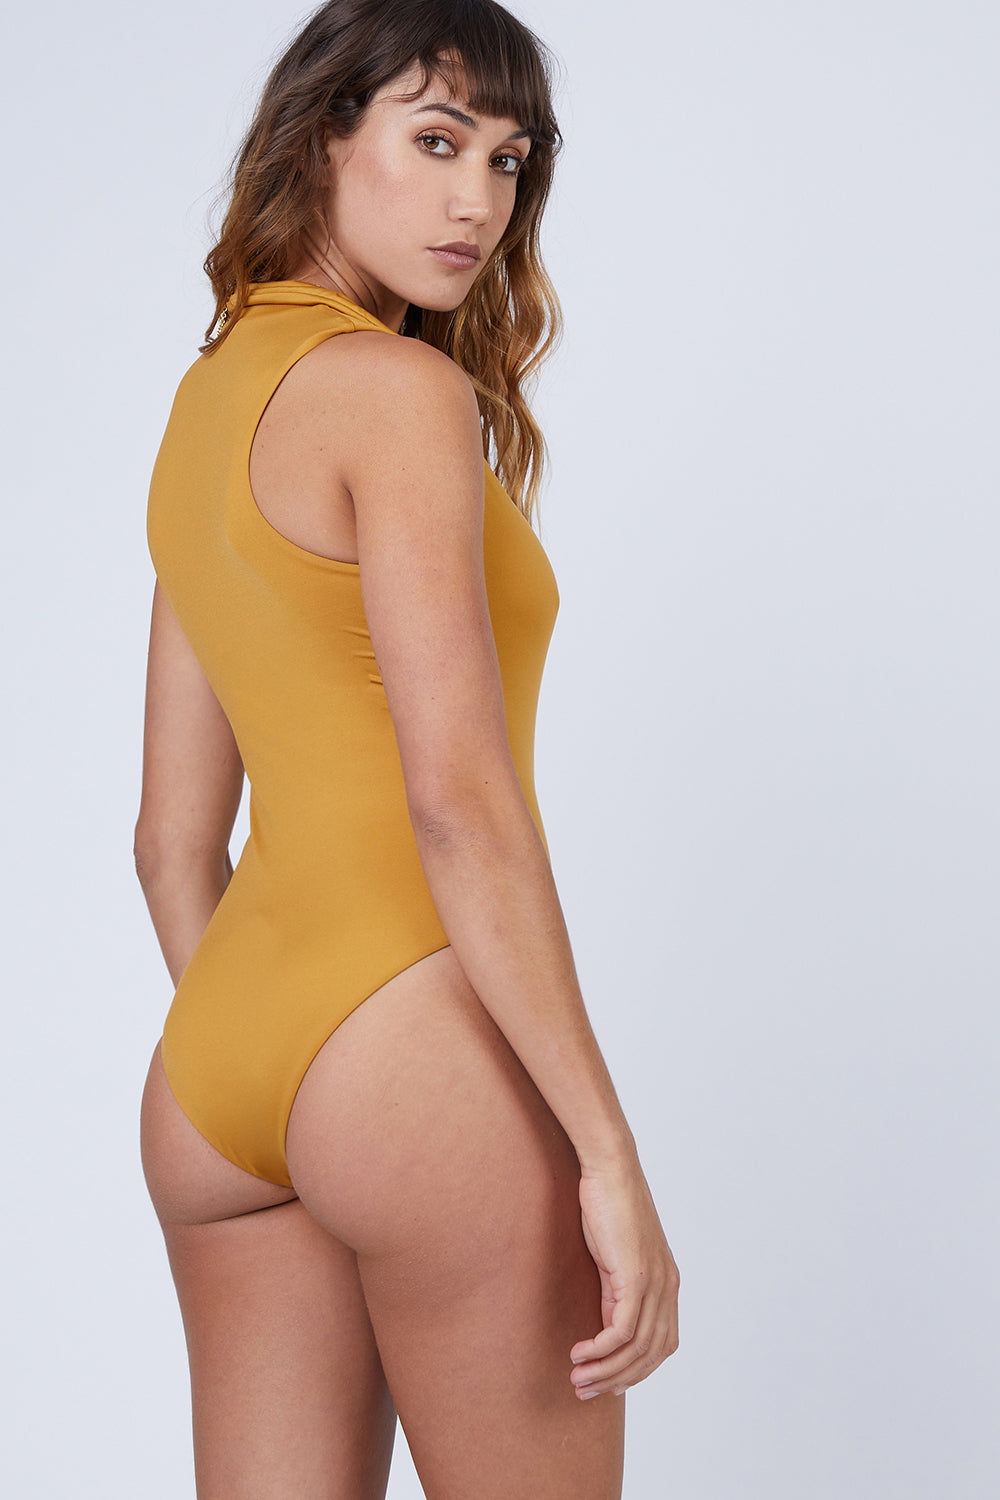 AMAIO SWIM Collette Plunging One Piece Swimsuit - Gold One Piece | Gold| Amaio Collette One Piece-Black| Amaio Swim Colette Plunging One Piece Swimsuit - Features: Collared. Plunging deep-V neck. Medium coverage.